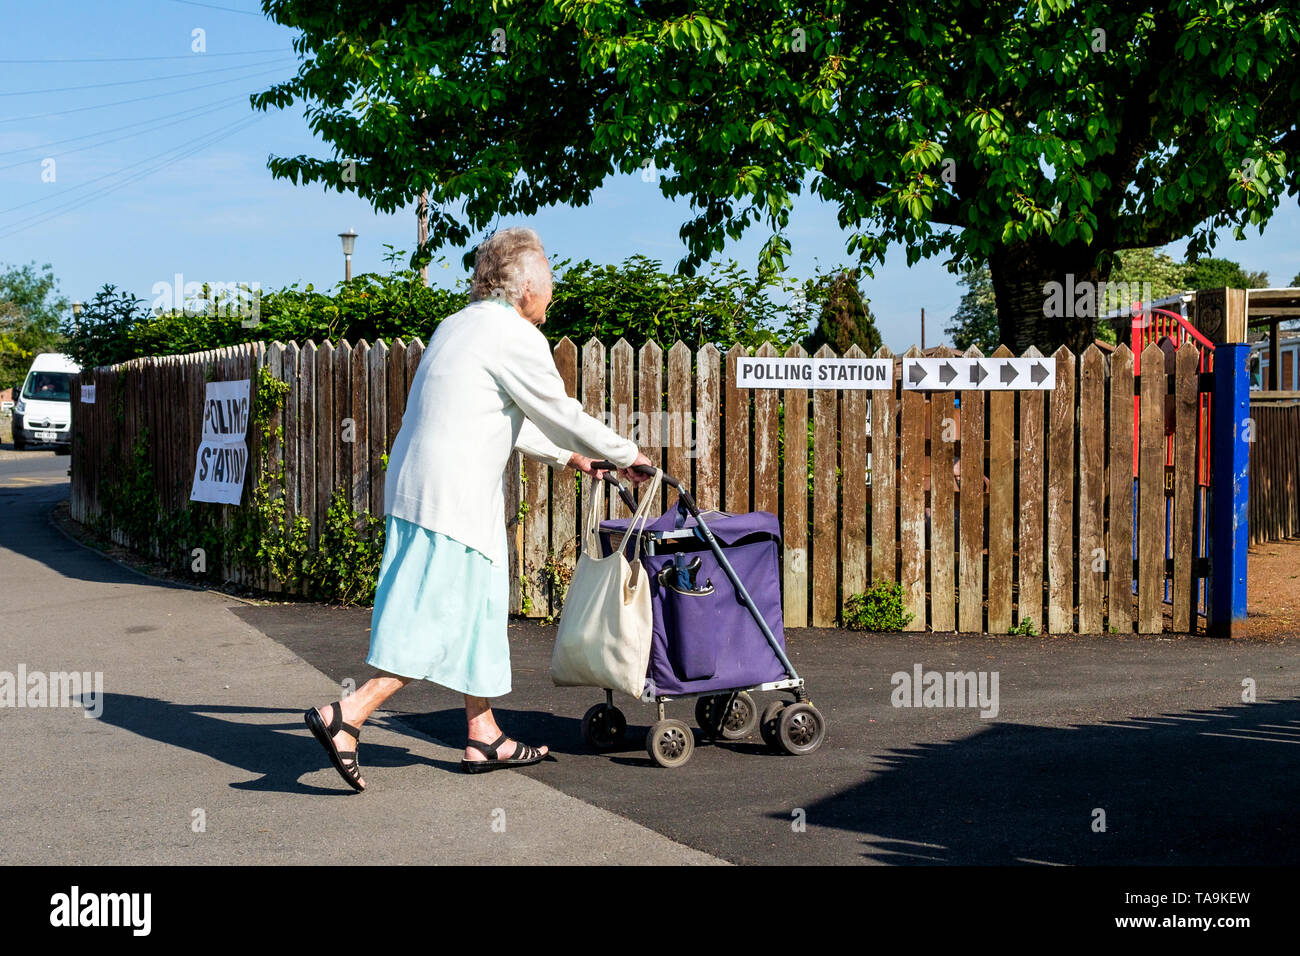 Chippenham, UK. 23rd May, 2019. A woman going to vote in the 2019 European Parliament elections is pictured entering a polling station situated inside a school in Chippenham, Wiltshire. Credit: Lynchpics/Alamy Live News - Stock Image